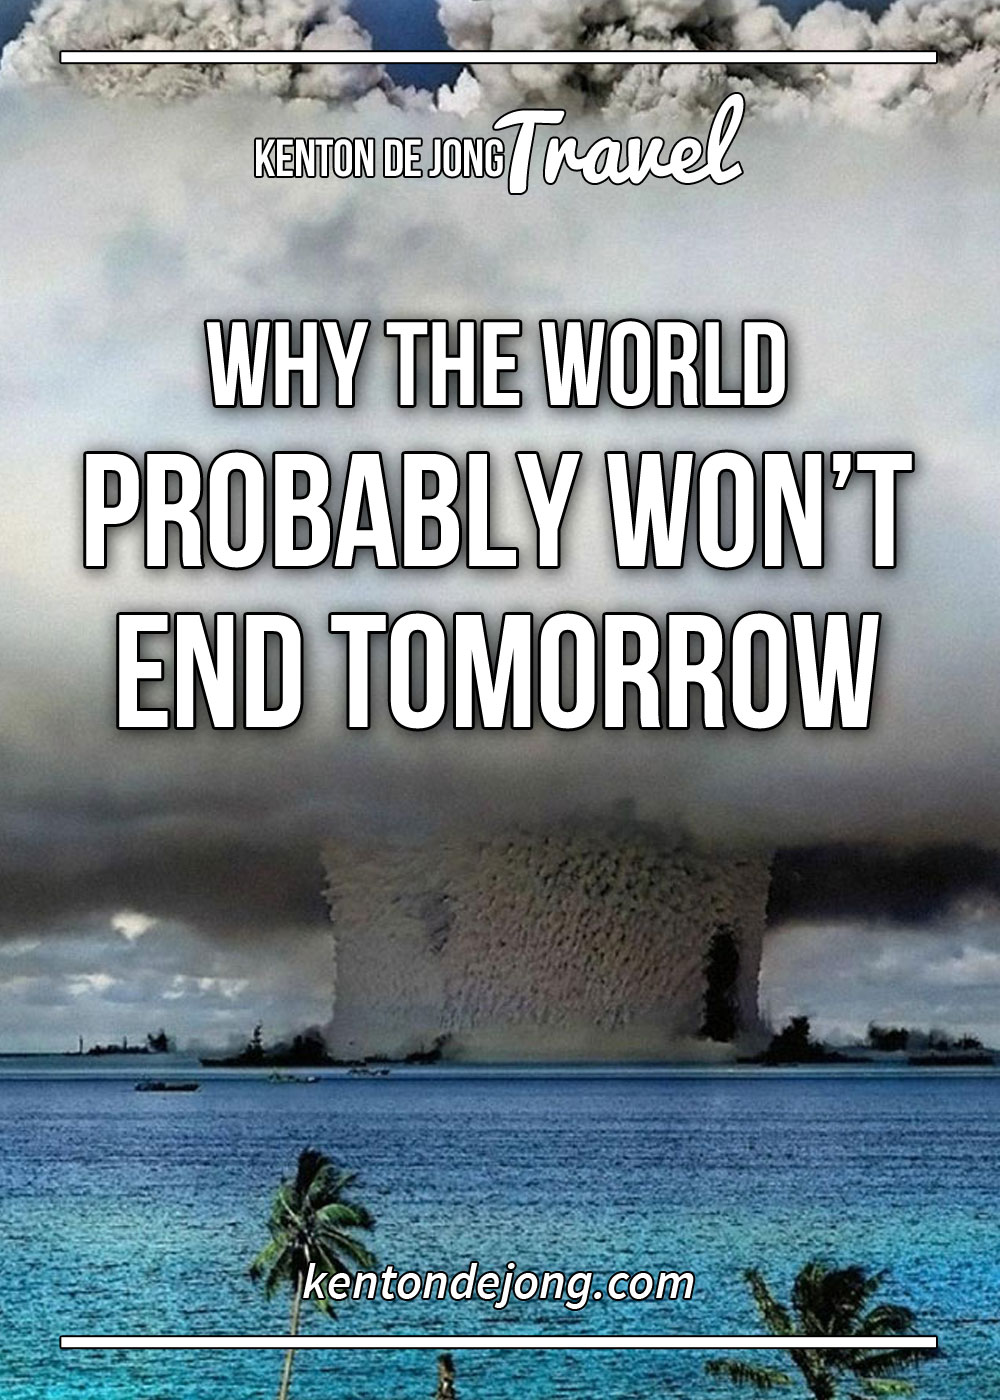 Why the World Probably Won't End Tomorrow